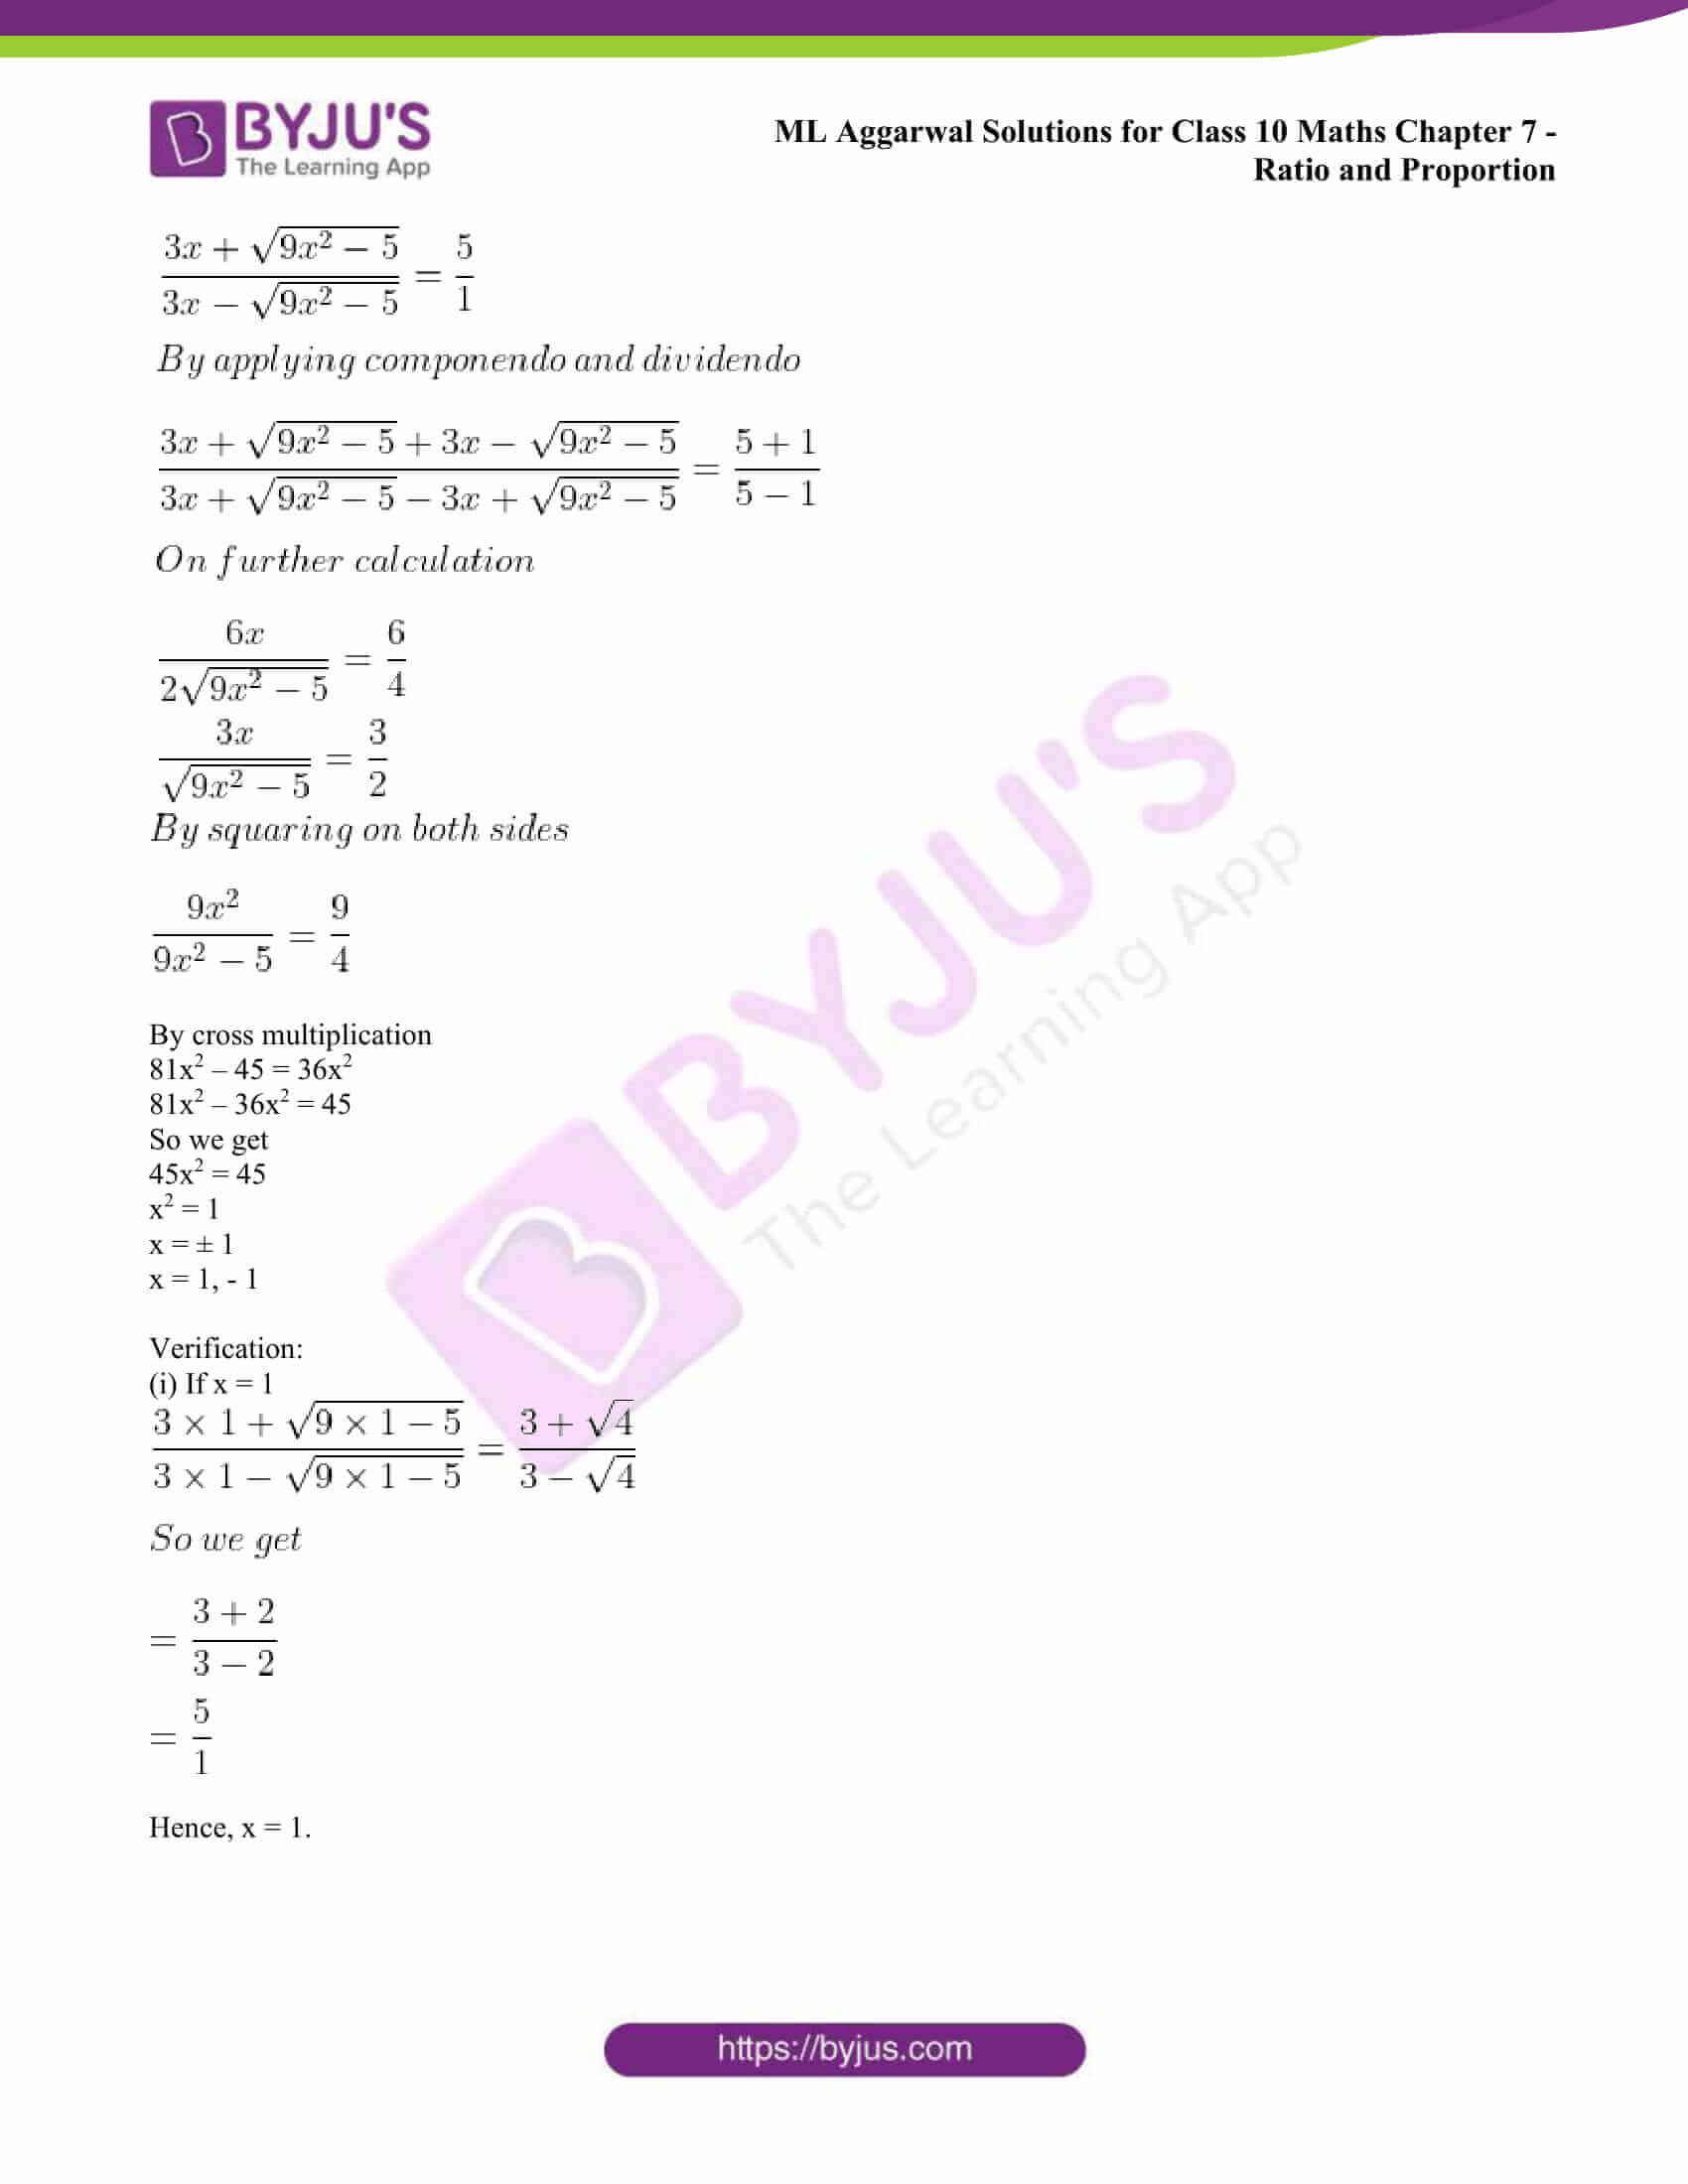 ml aggarwal solutions class 10 maths chapter 7 60